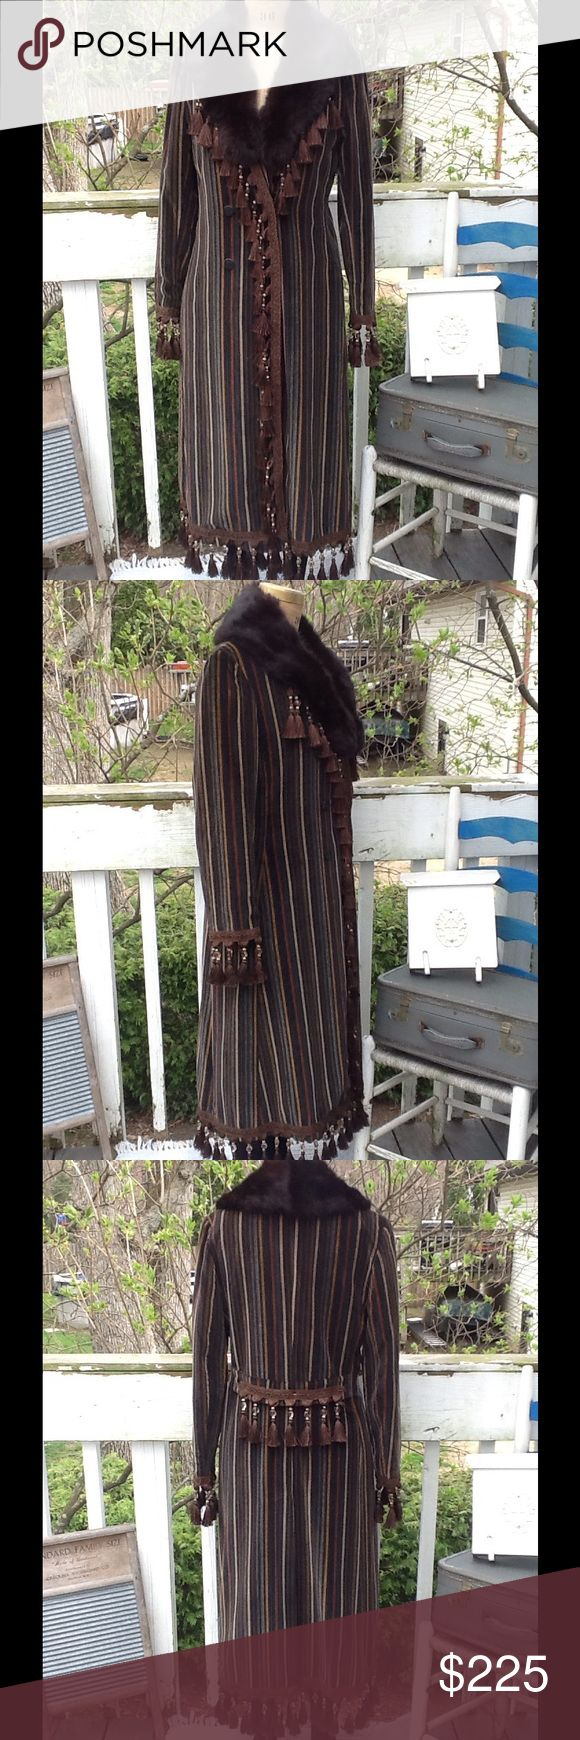 """VTG Velvet Fringe Coat W/Fox Collar Love this Coat...I UPCYCLED this beauty,it's in a striped velvet w/A Large Fox Fur Collar I added, I also added the beaded TASSLE Fringe...(this fringe is $25 a yard,there is about 3-3.5 yards on it,it's fully lined and in EUC!!! It's a Sz 10 by Count Romi LTD Your all weather Traveller...stunning coat! Measurements: L:49"""" to TASSLES, B:40, SH:16"""", SL:22""""-26"""" w/TASSLES, W:18.5"""" buttoned...the colors are shades of brown,black and Gold Vintage Jackets…"""